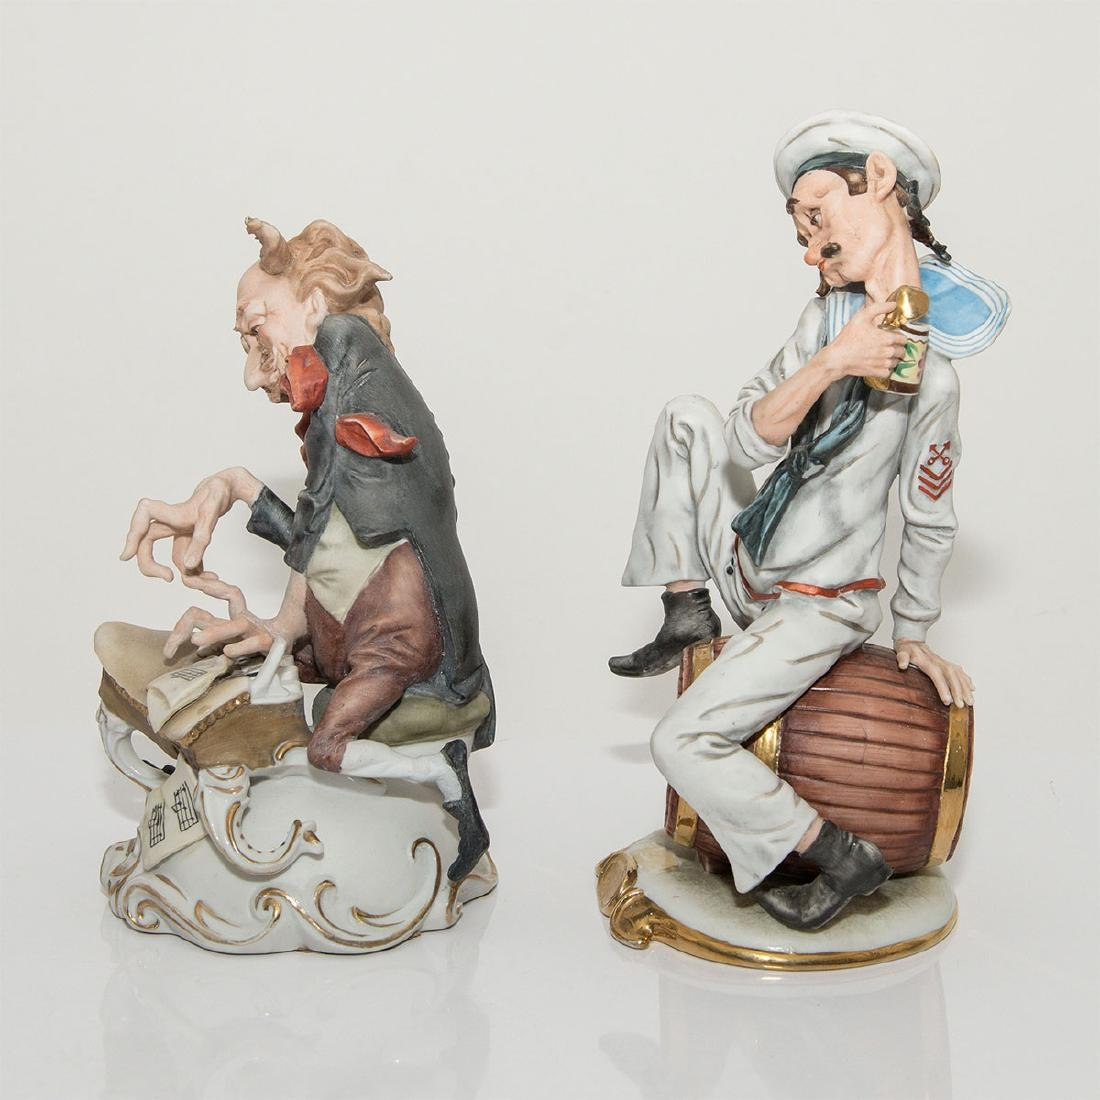 GROUP OF 2 CARICATURE PORCELAIN FIGURINES - 2